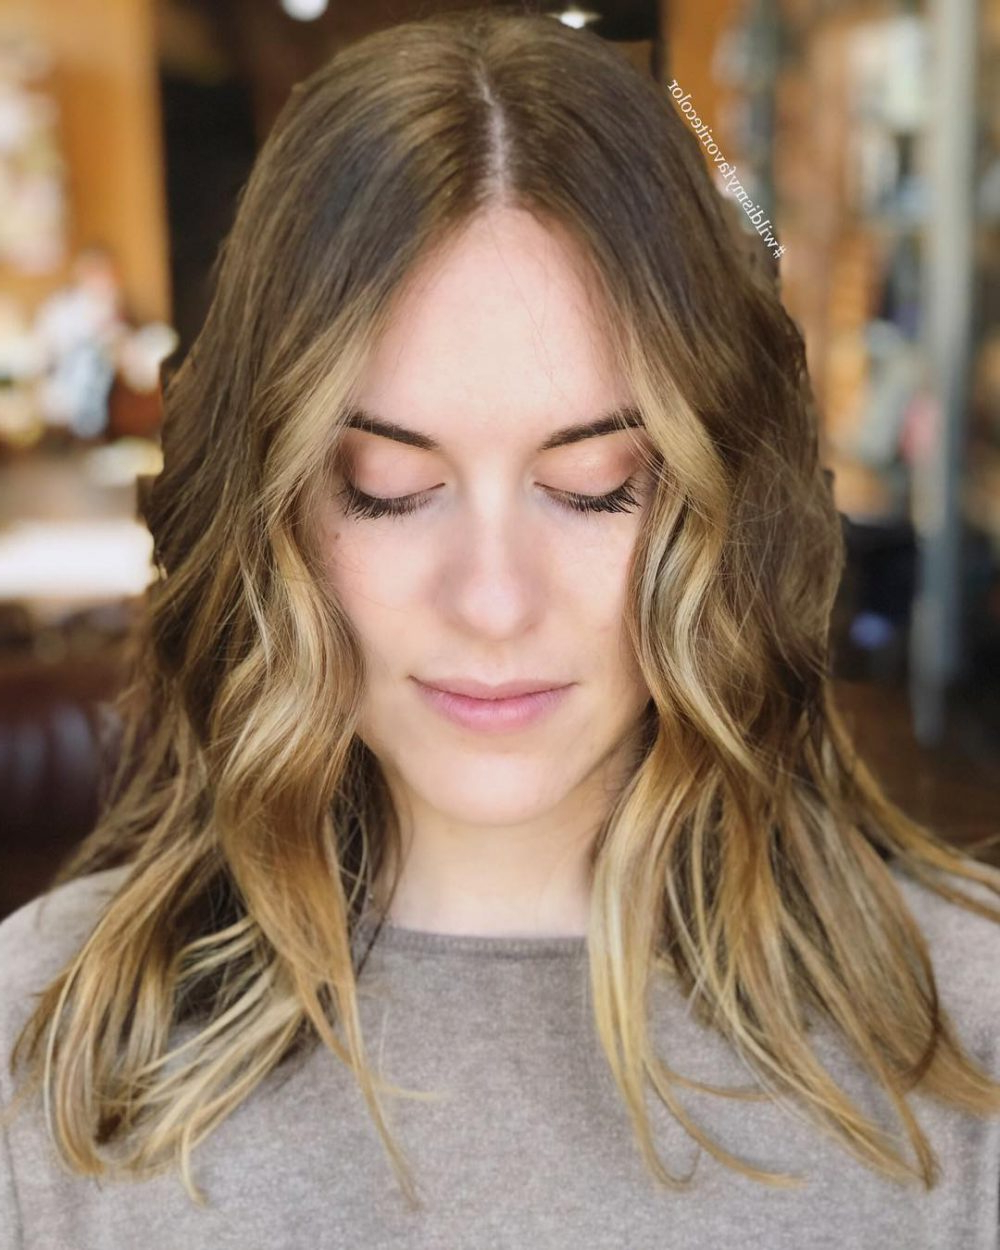 17 Flattering Medium Hairstyles For Round Faces In 2019 Regarding Most Recently Released Medium Hairstyles For Round Face (Gallery 1 of 20)